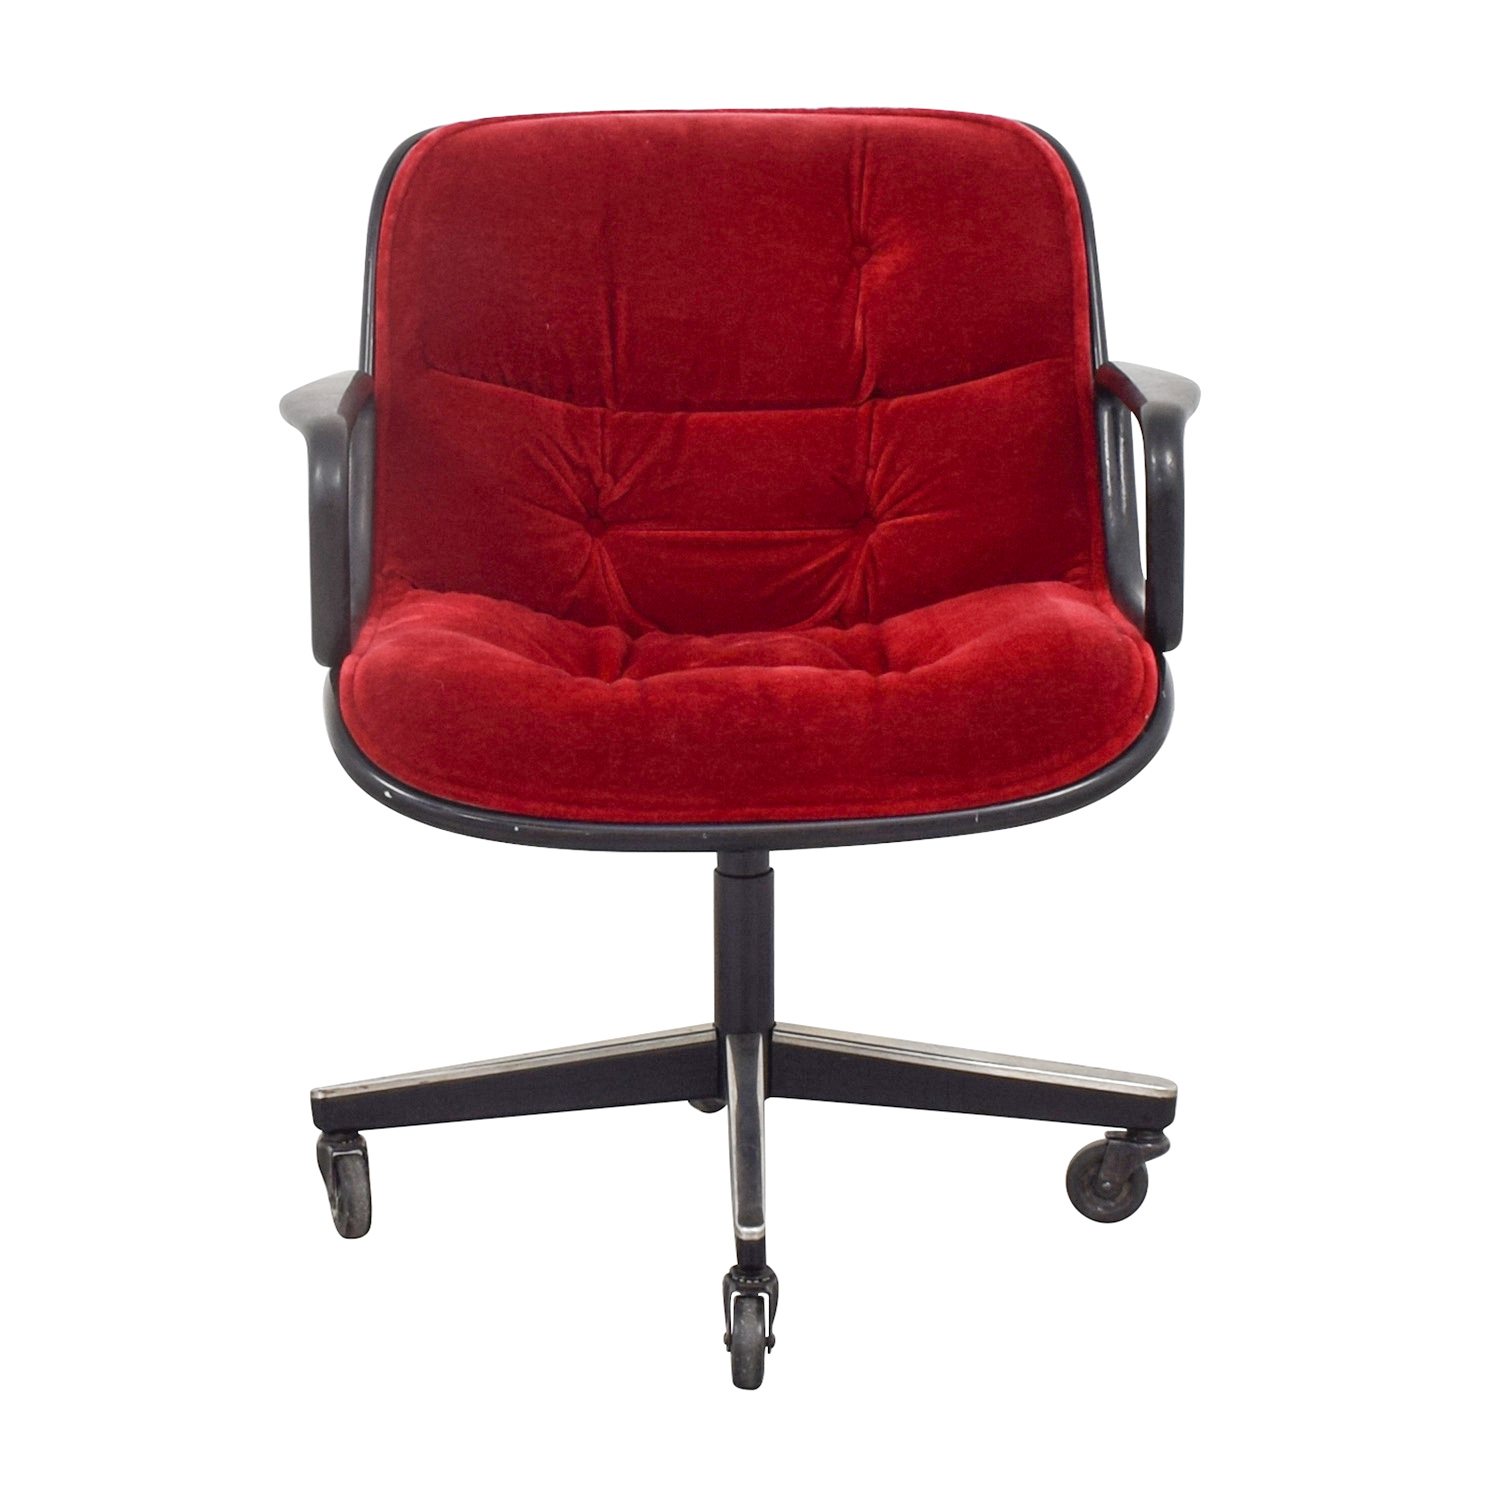 Knoll Knoll Pollock Executive Chair on sale